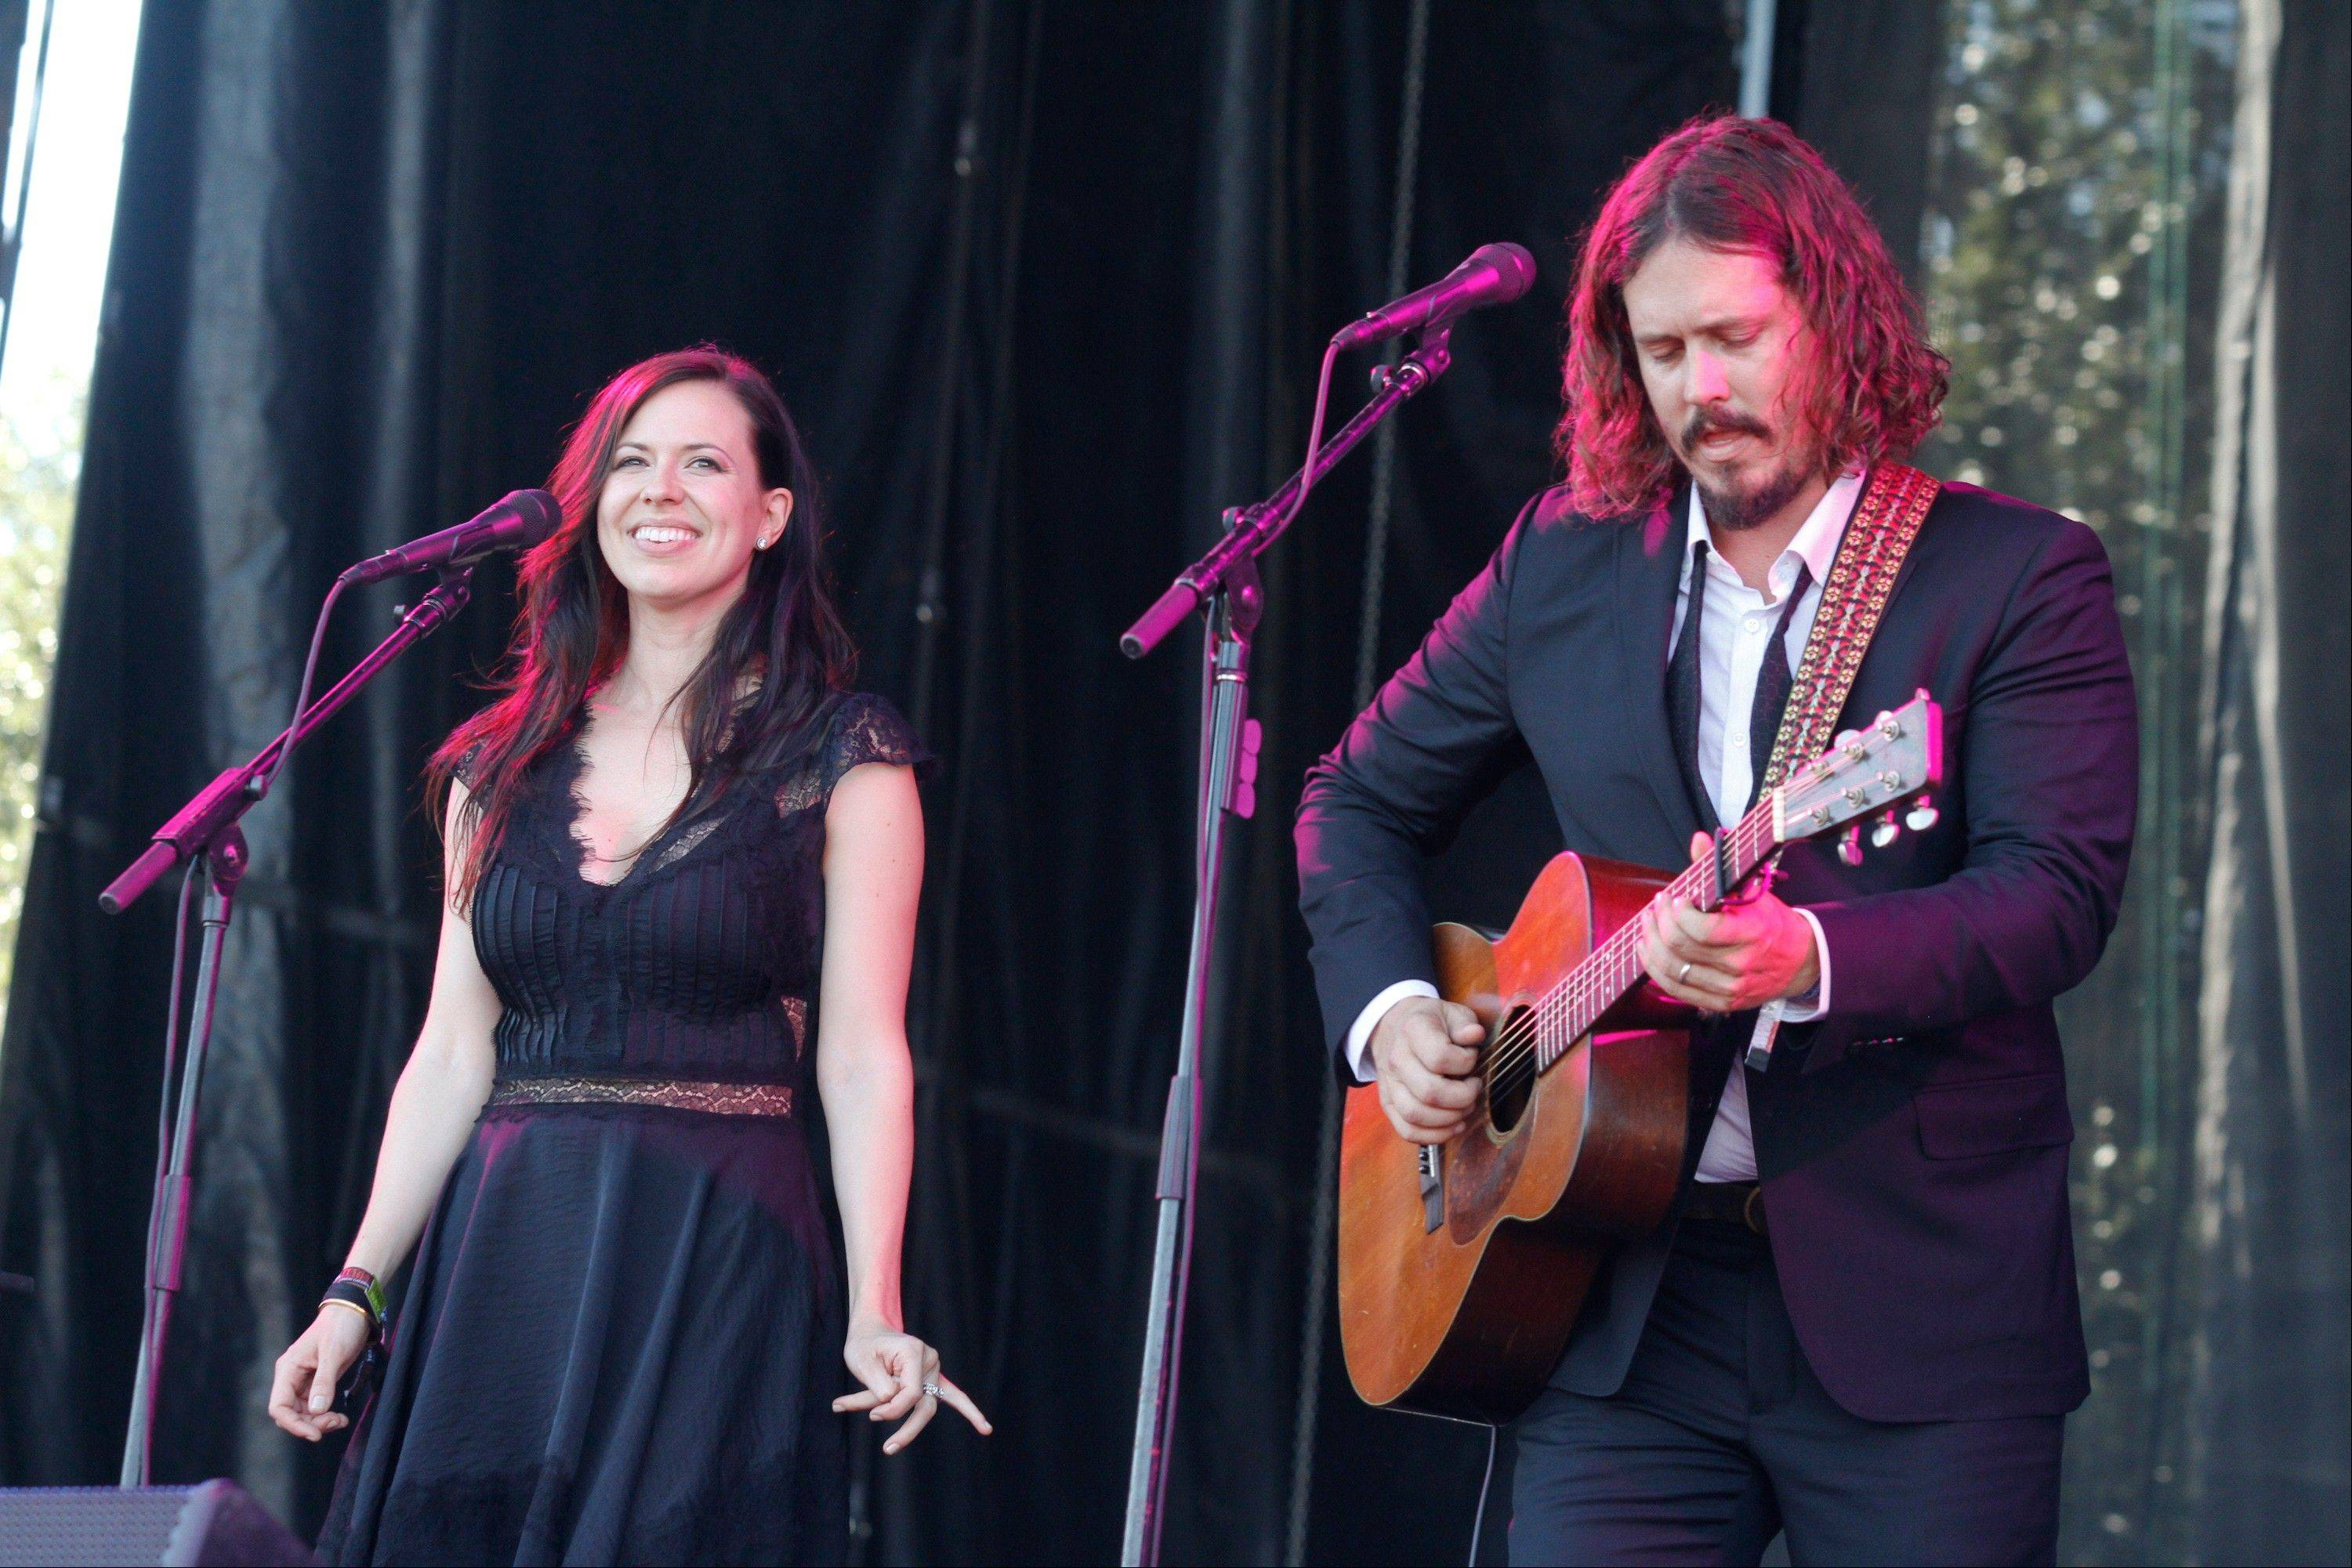 Joy Williams and John Paul White of The Civil Wars are on hiatus and are not speaking to each other but will release their new self-titled second album on Aug. 6.